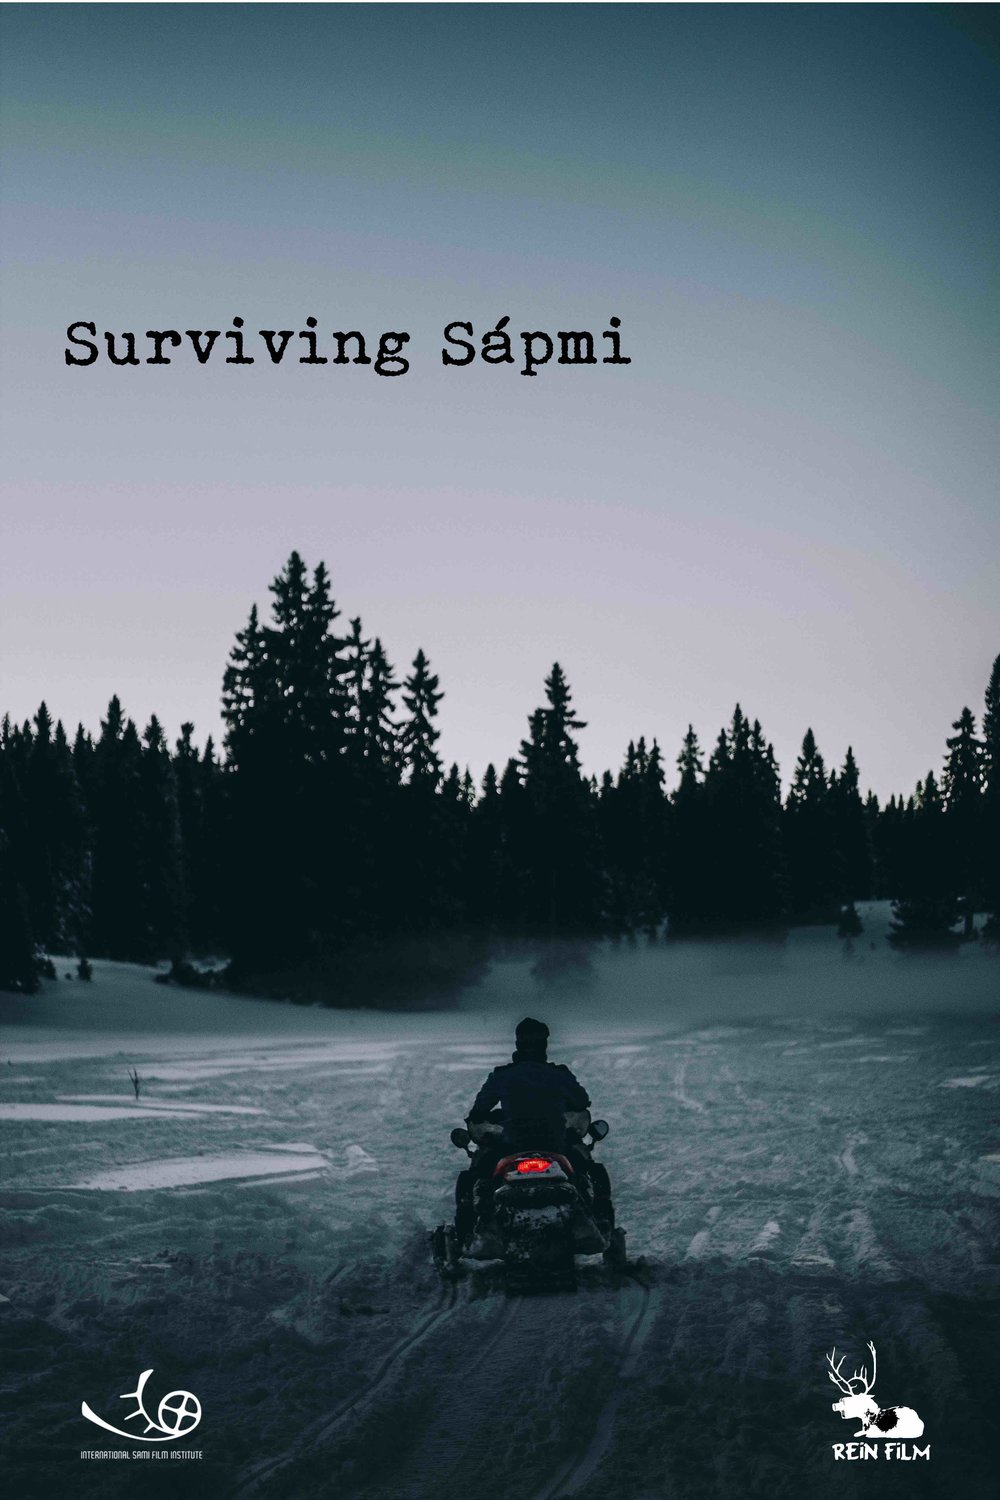 Surviving Sapmi